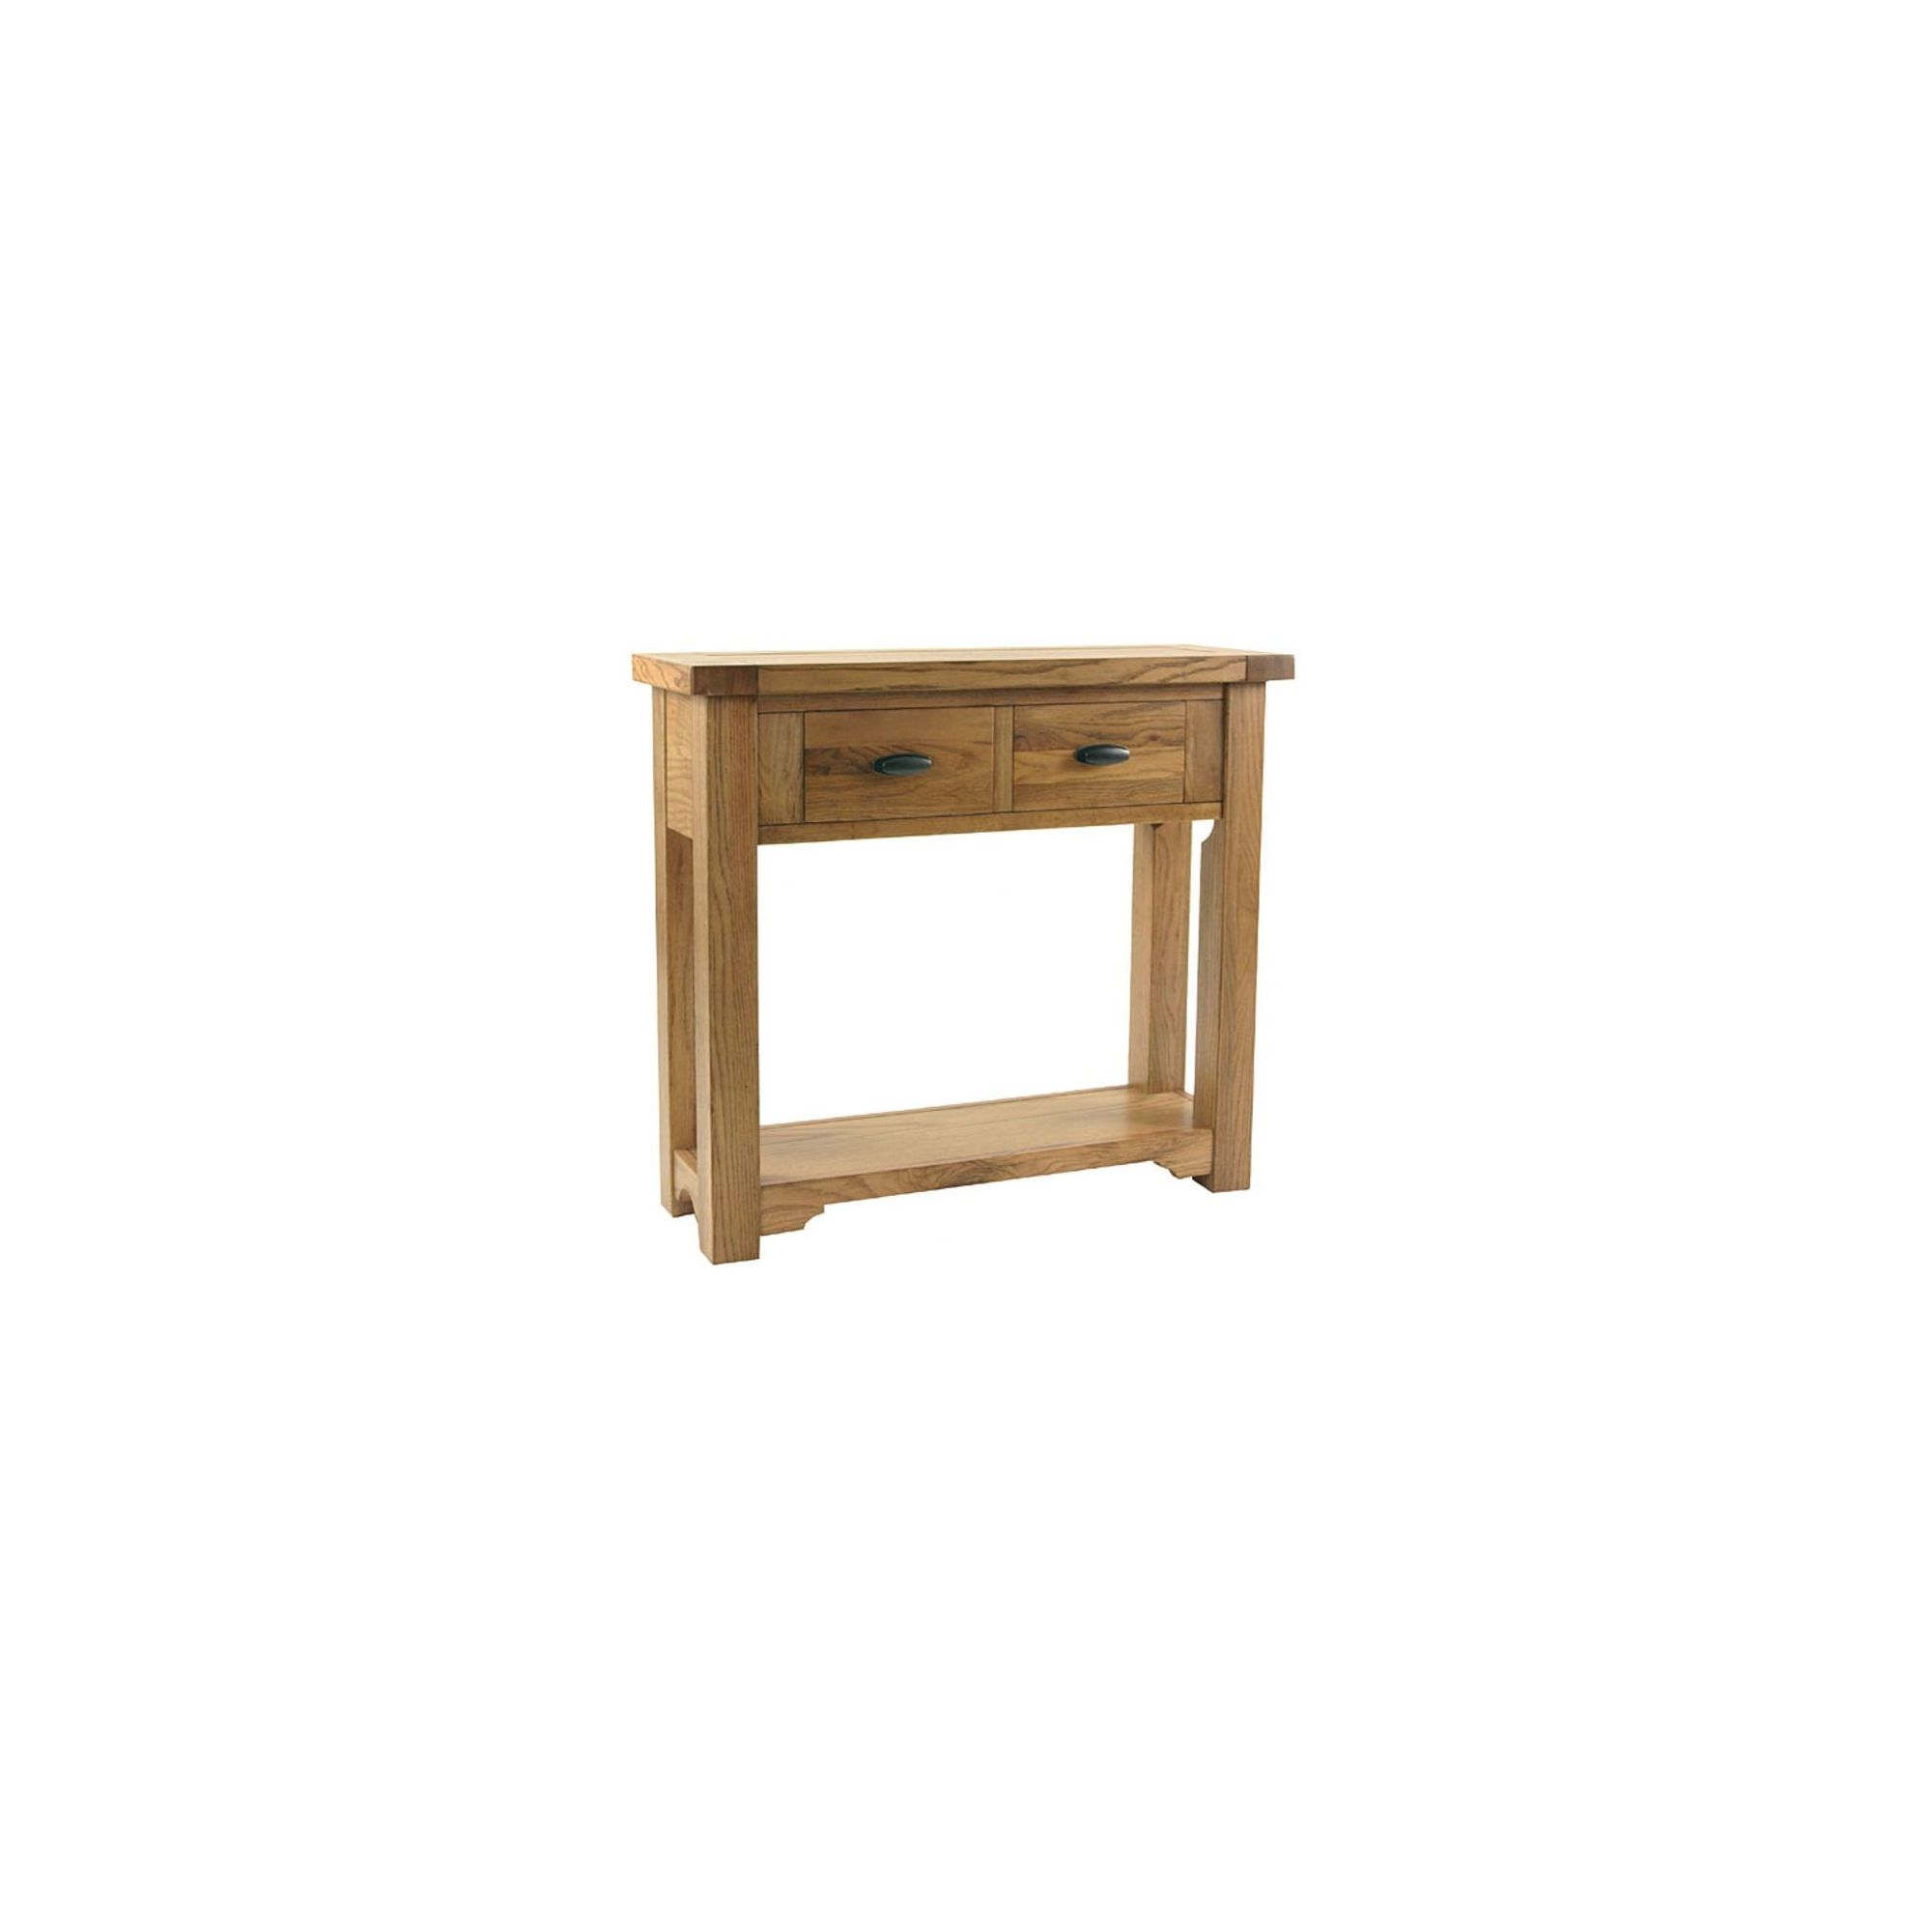 Kelburn Furniture Toulouse Small Console Table in Medium Oak Stain and Satin Lacquer at Tesco Direct